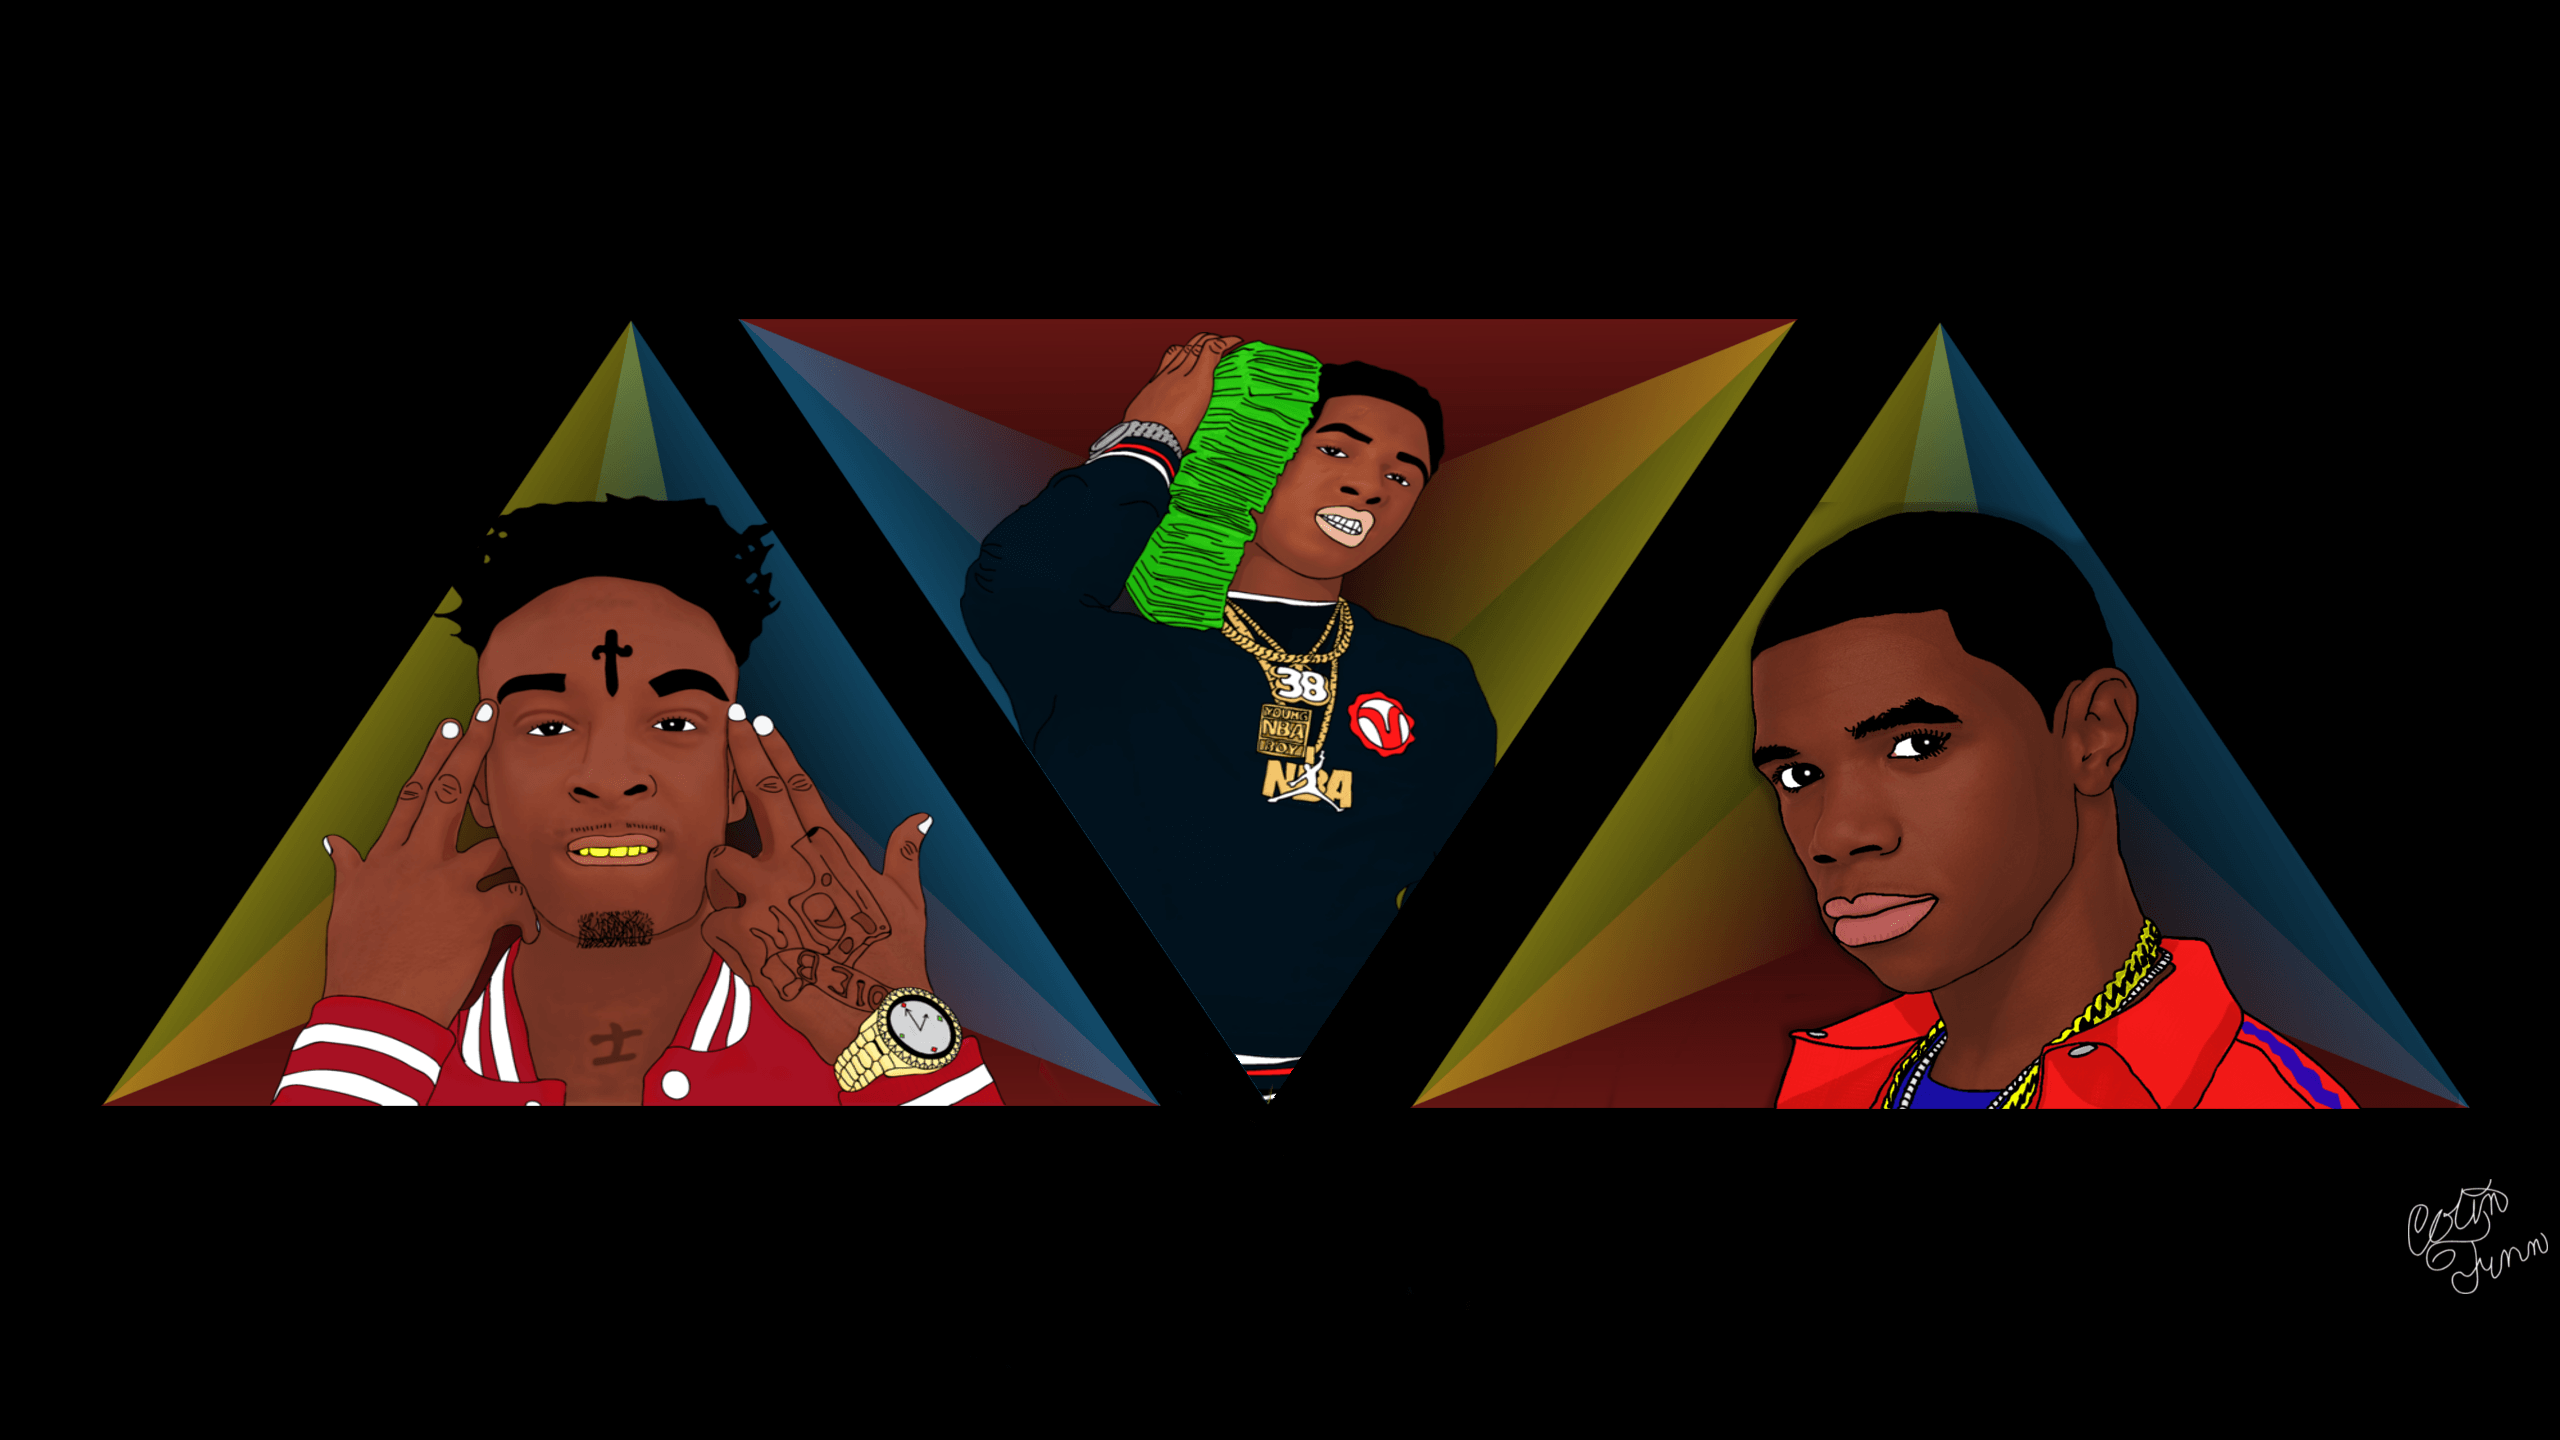 Supreme NBA YoungBoy Wallpapers - Wallpaper Cave